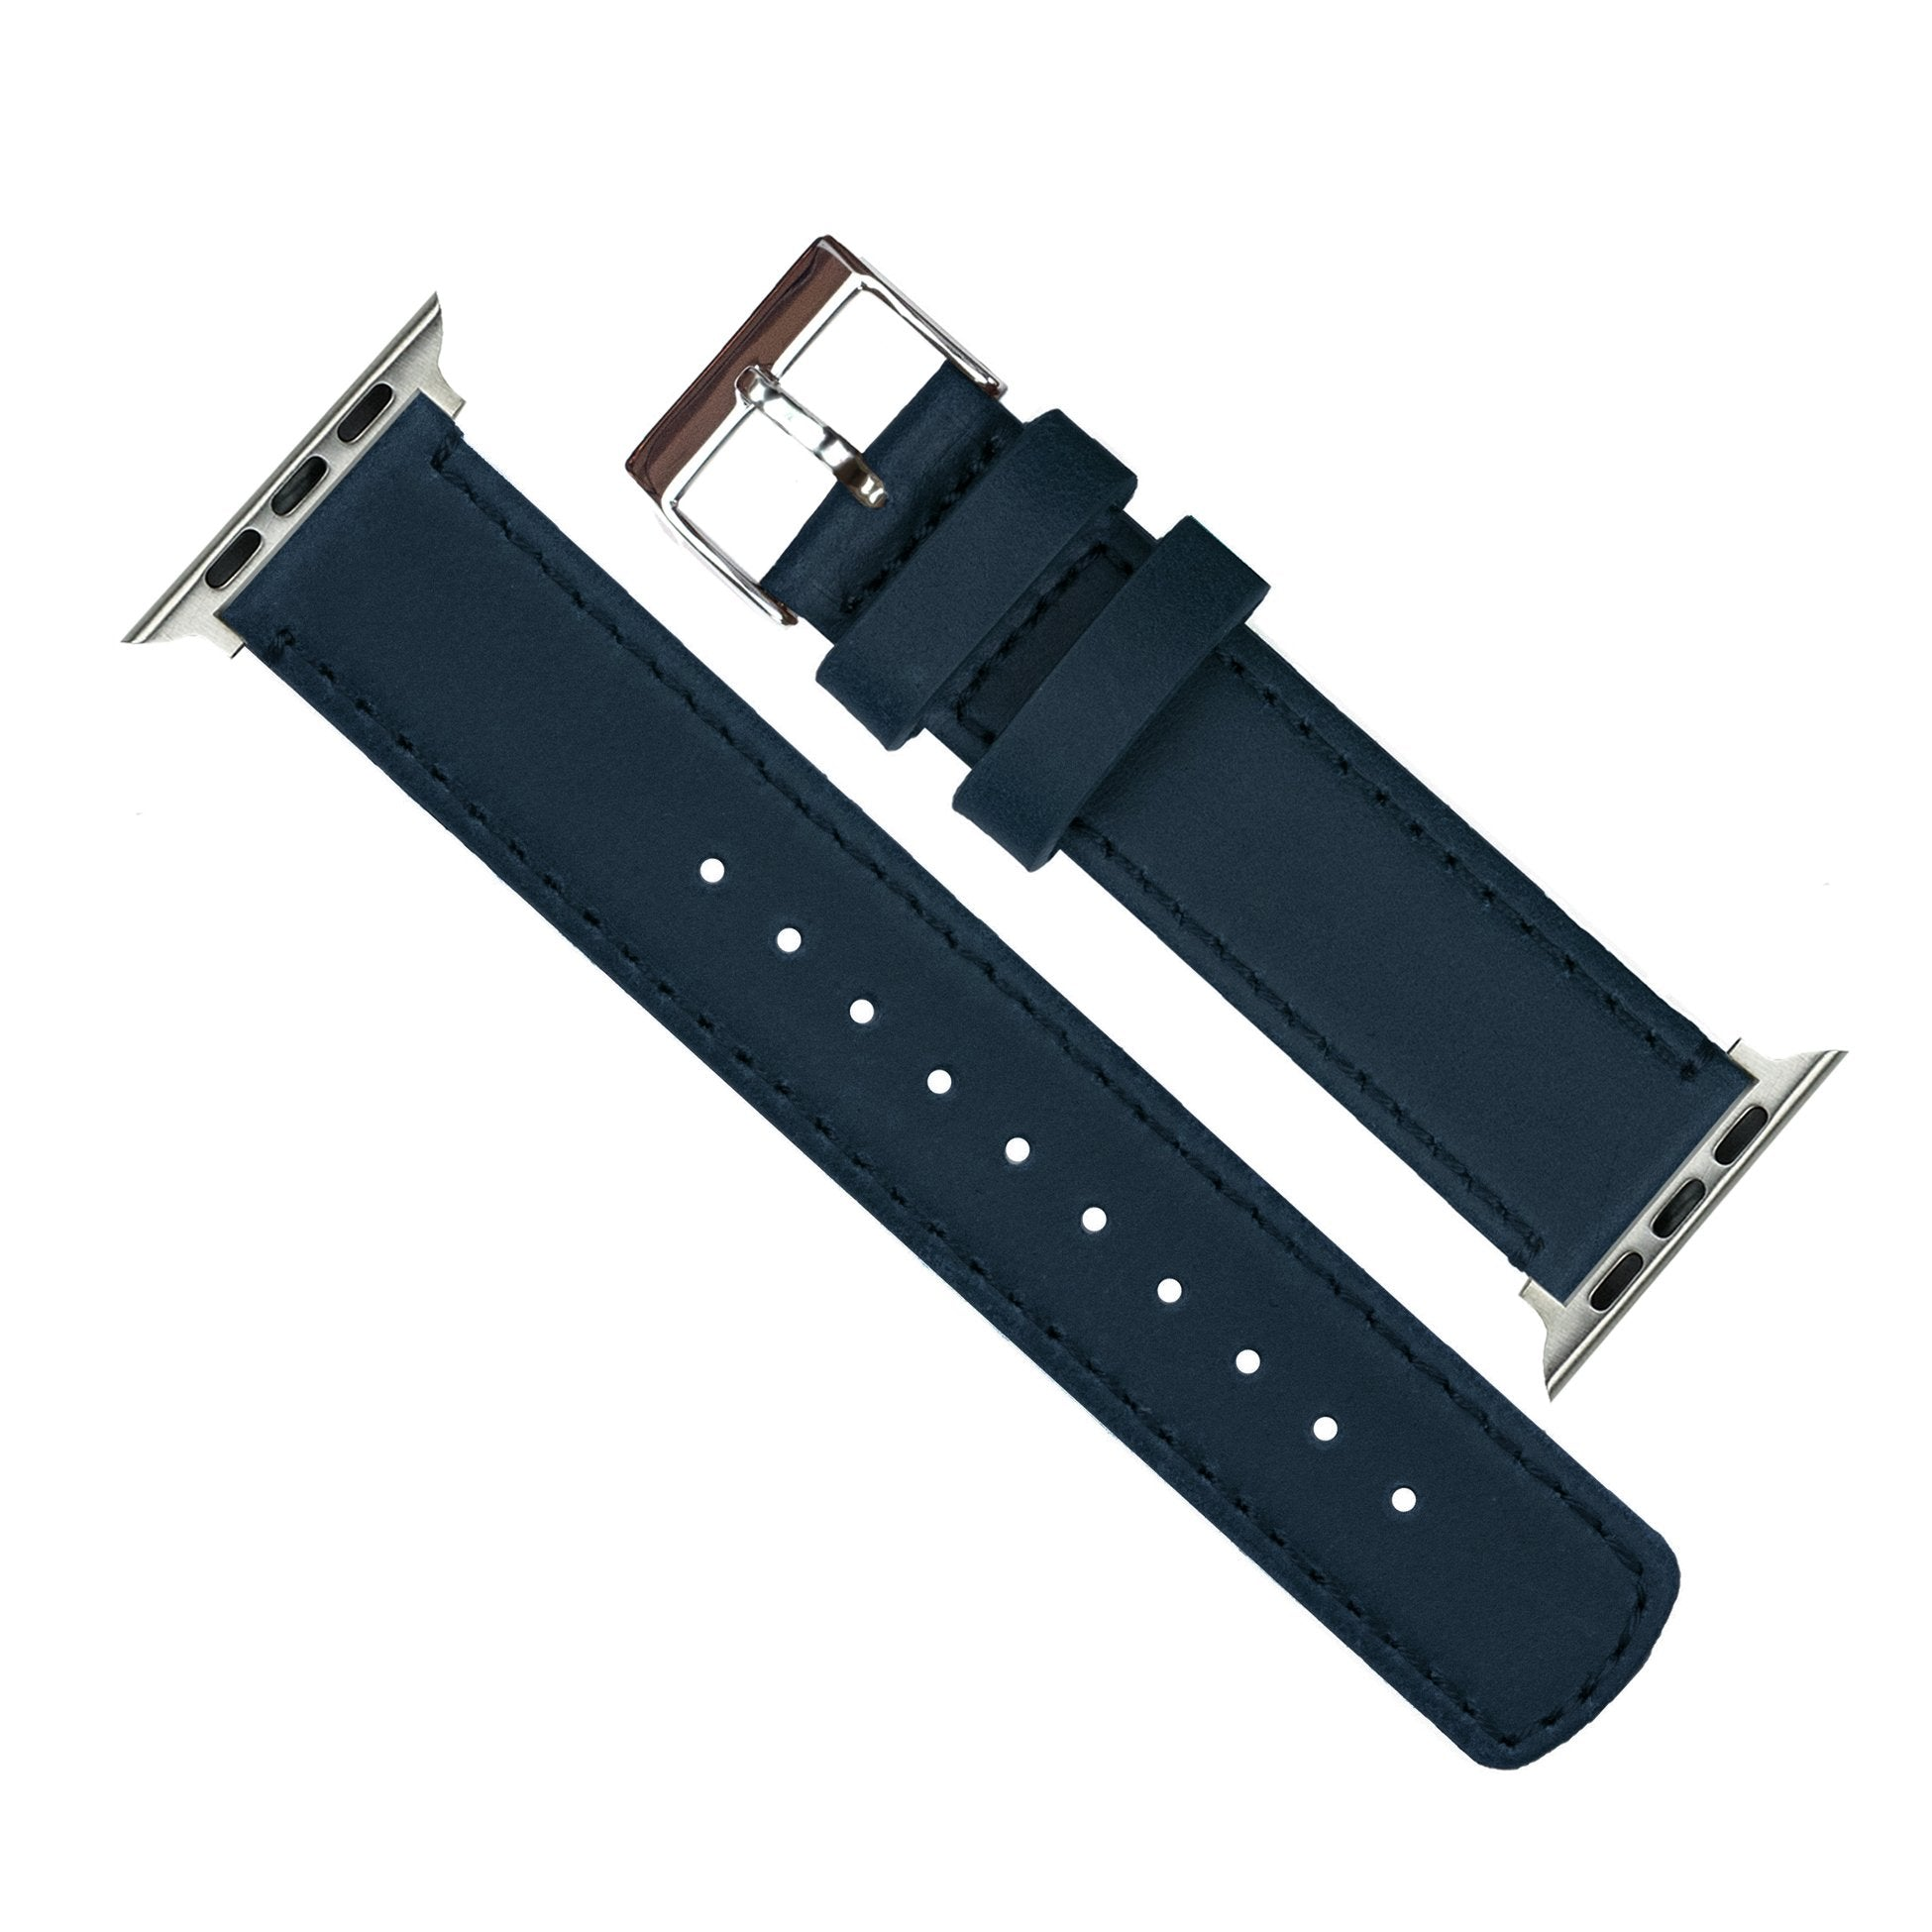 Barton Leather Watch Bands Compatible with All Apple Watch Models -  Leather & Linen White Stitching